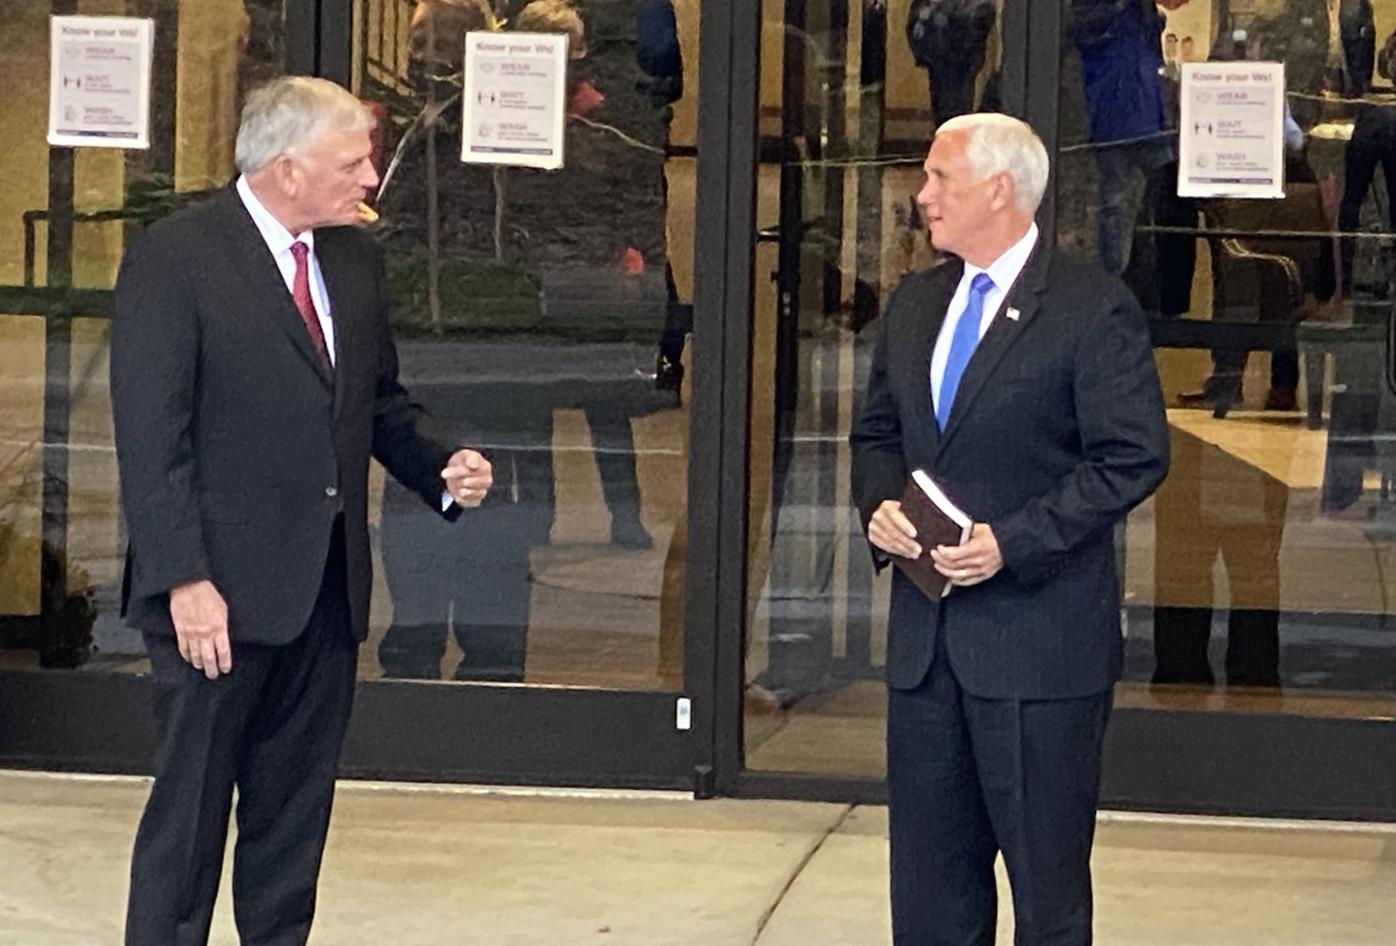 Franklin Graham and Vice President Mike Pence